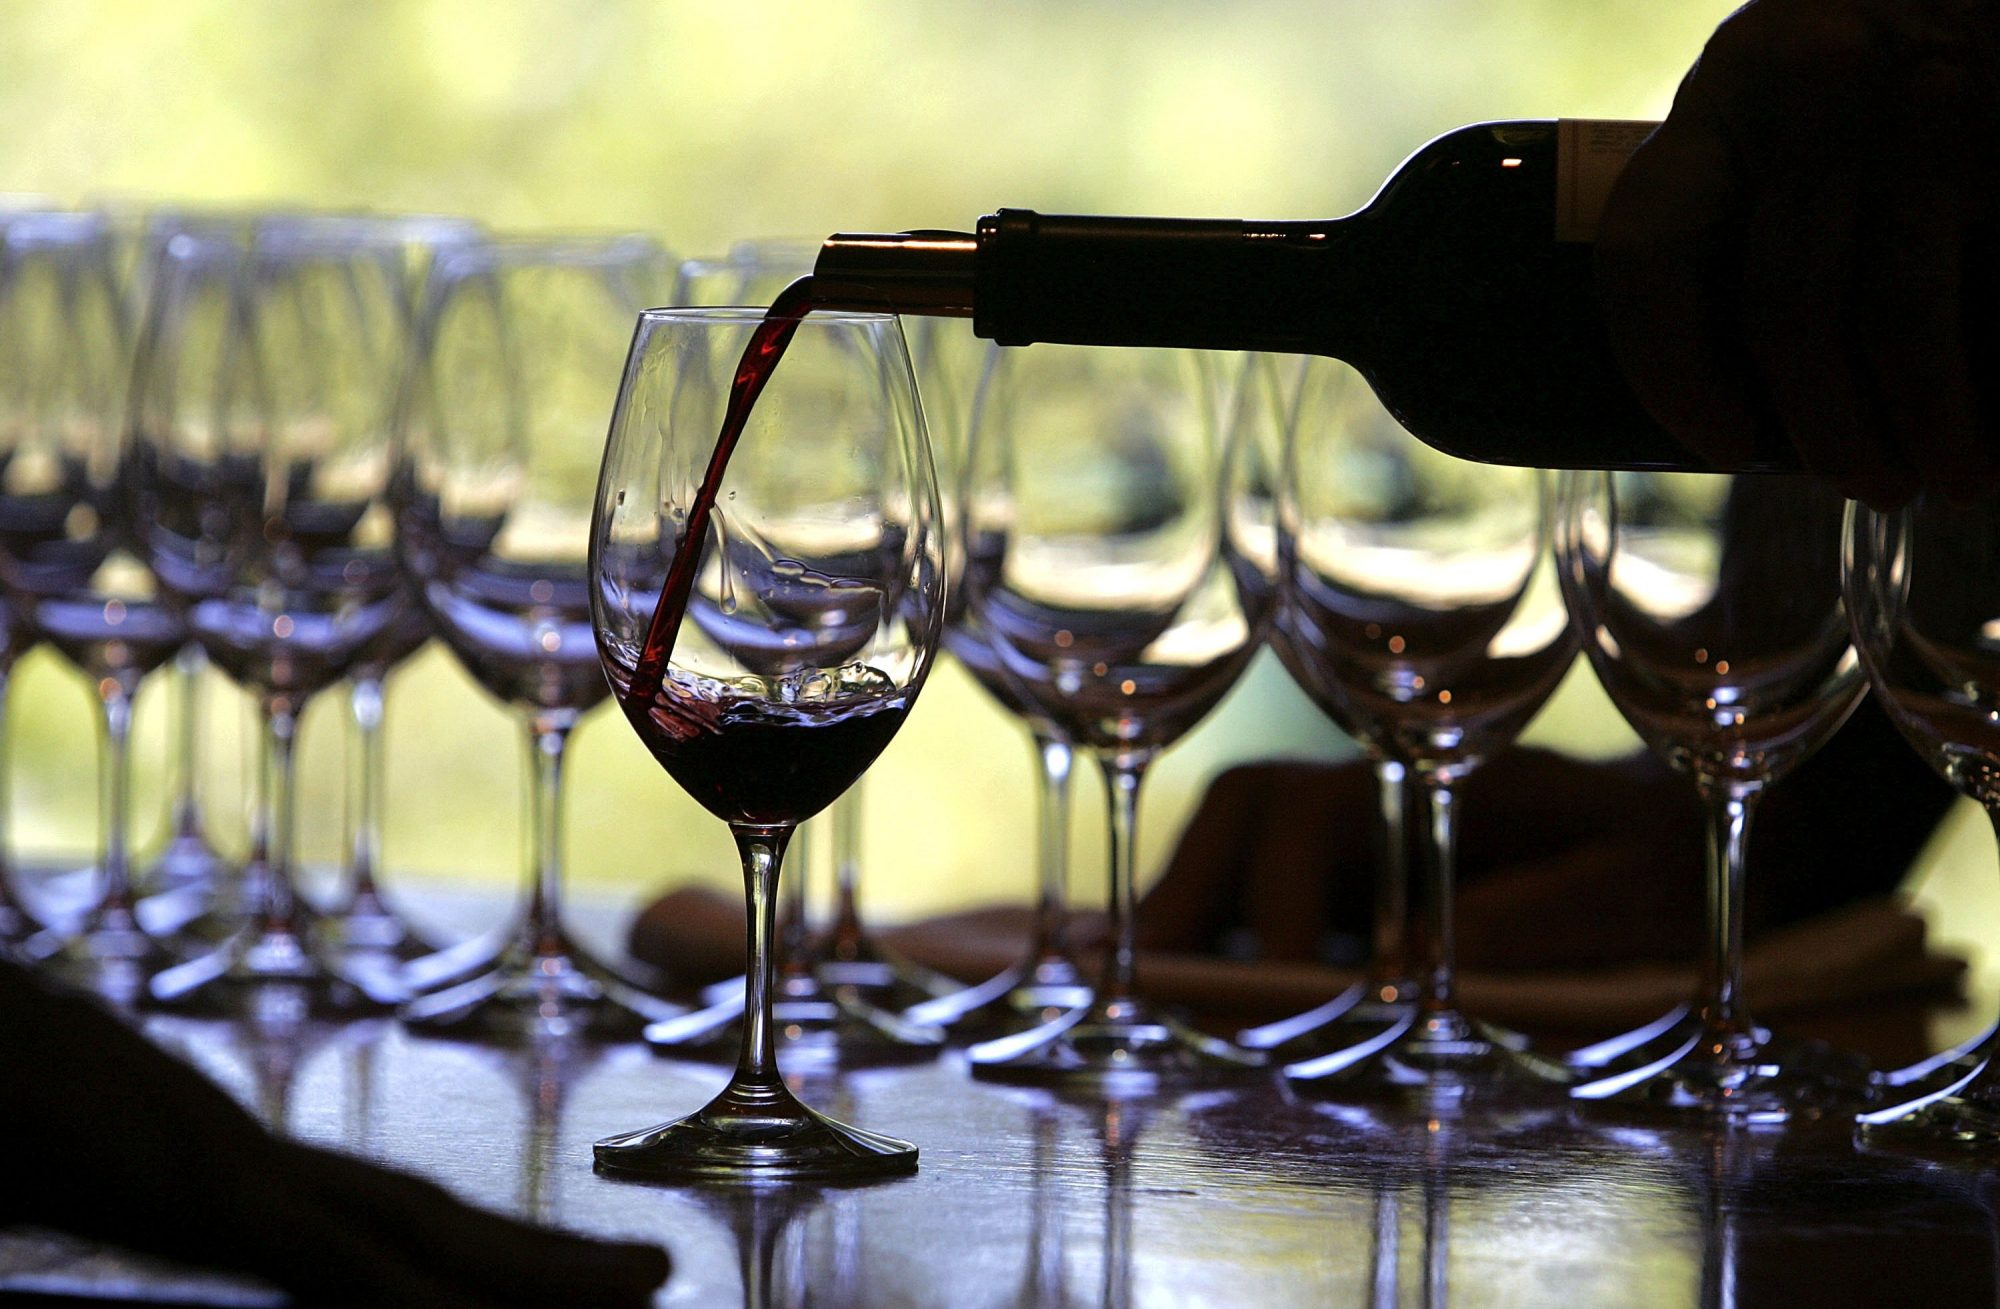 Fall Harvest Underway At Napa Wineries